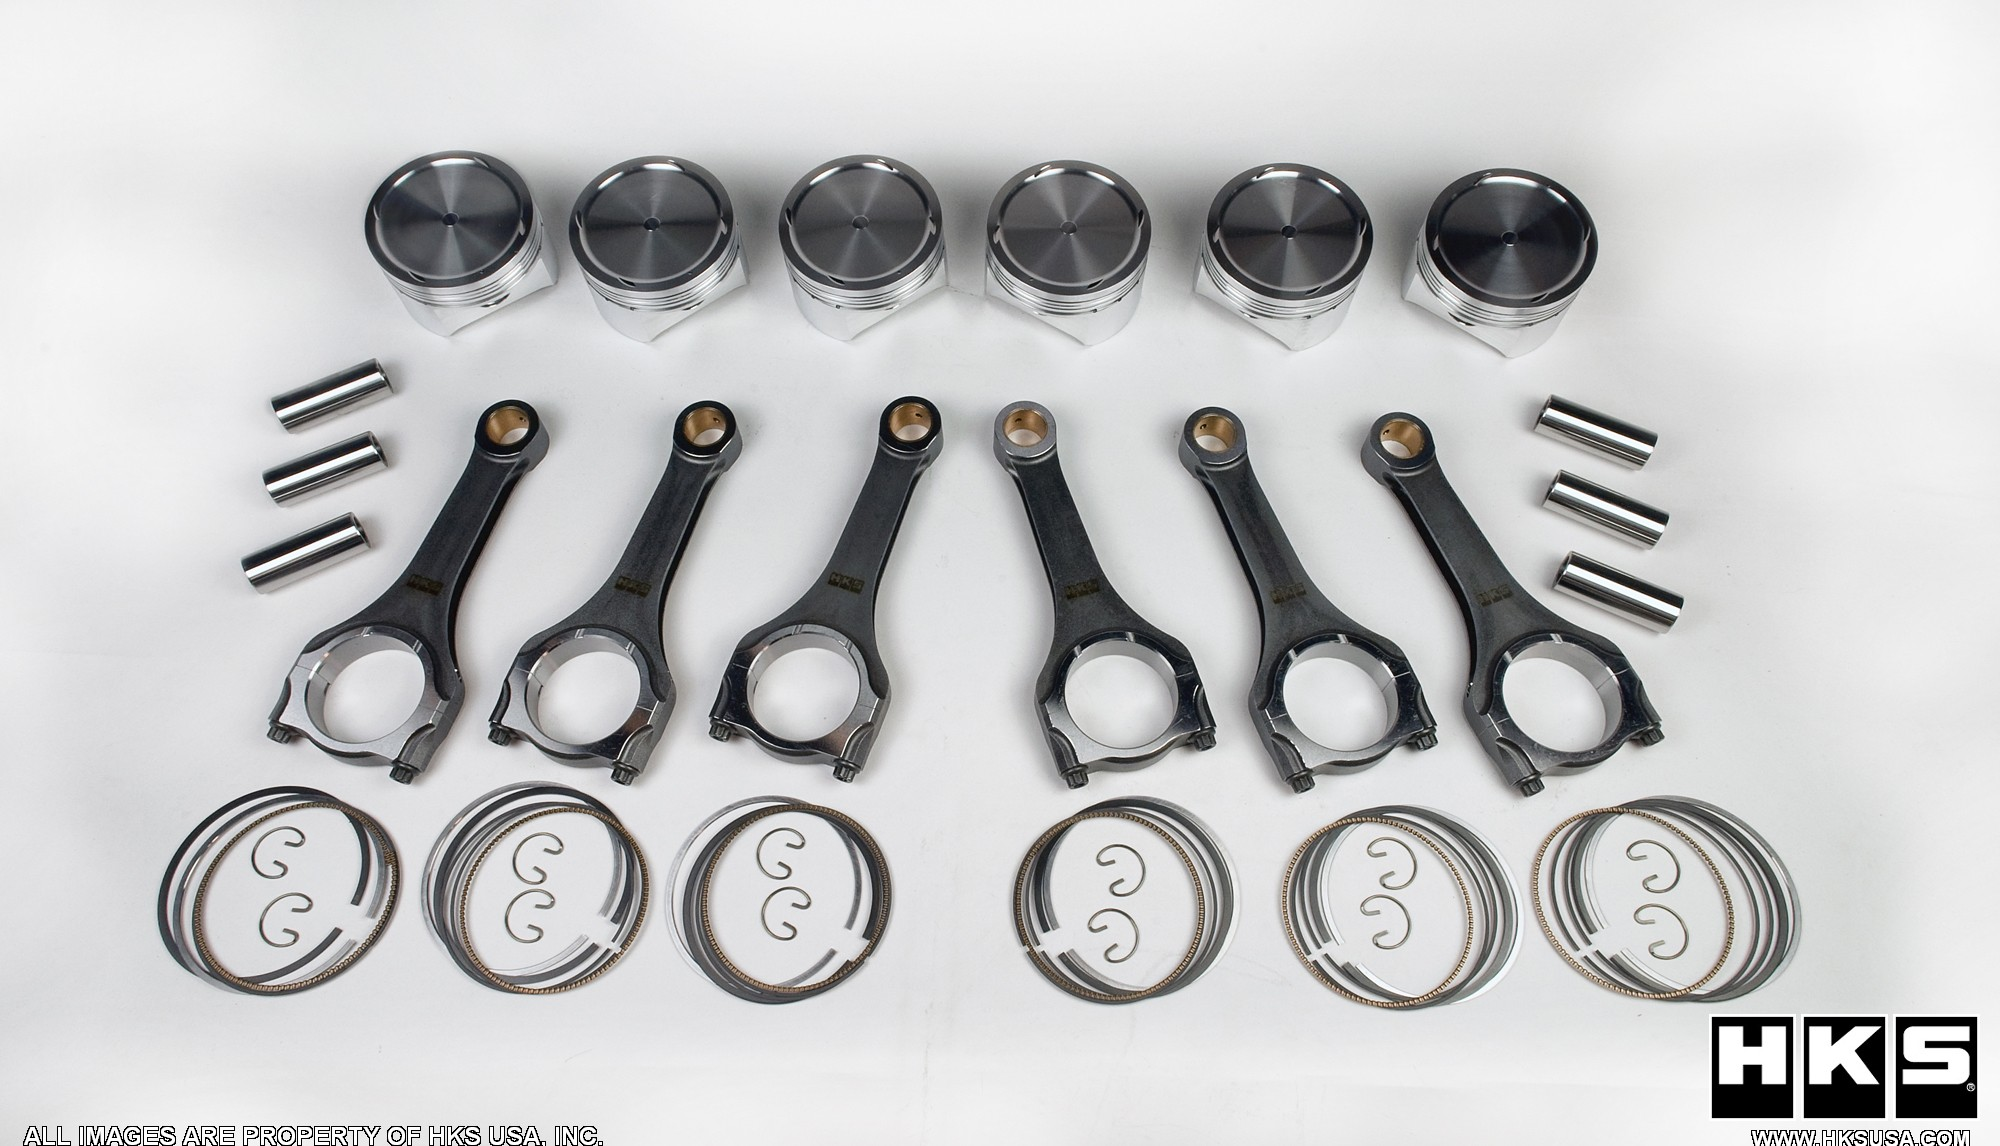 HKS Pistons & Connecting Rods 95.7mm Bore & 9.0:1CR Infiniti G35 2003-2006